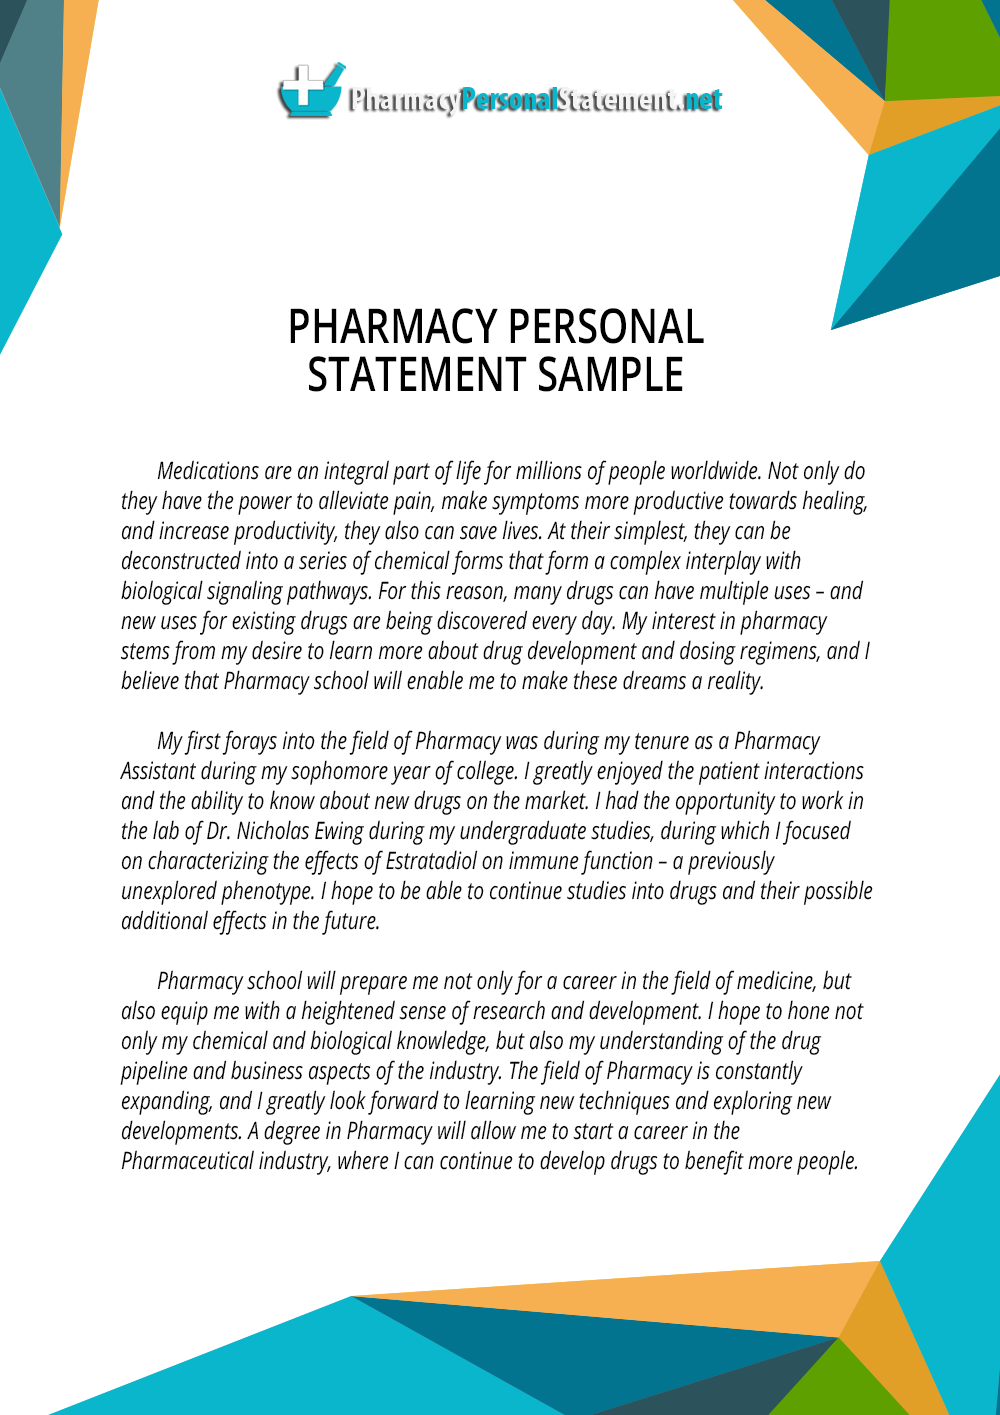 pharmacy personal statement sample on behance